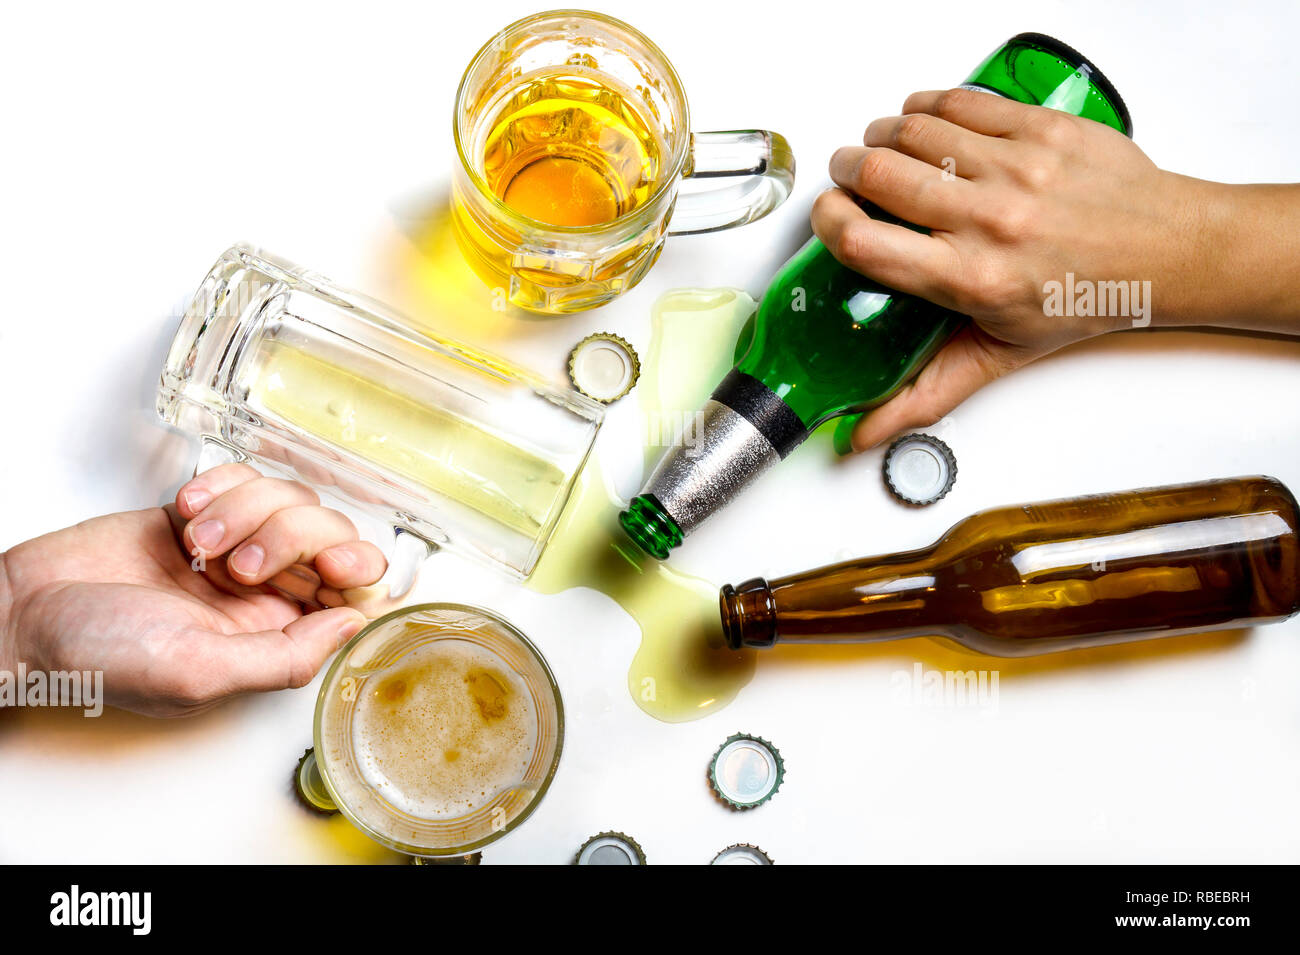 When the party is over oncept. Hands of people passed out on messy table after beer party Stock Photo